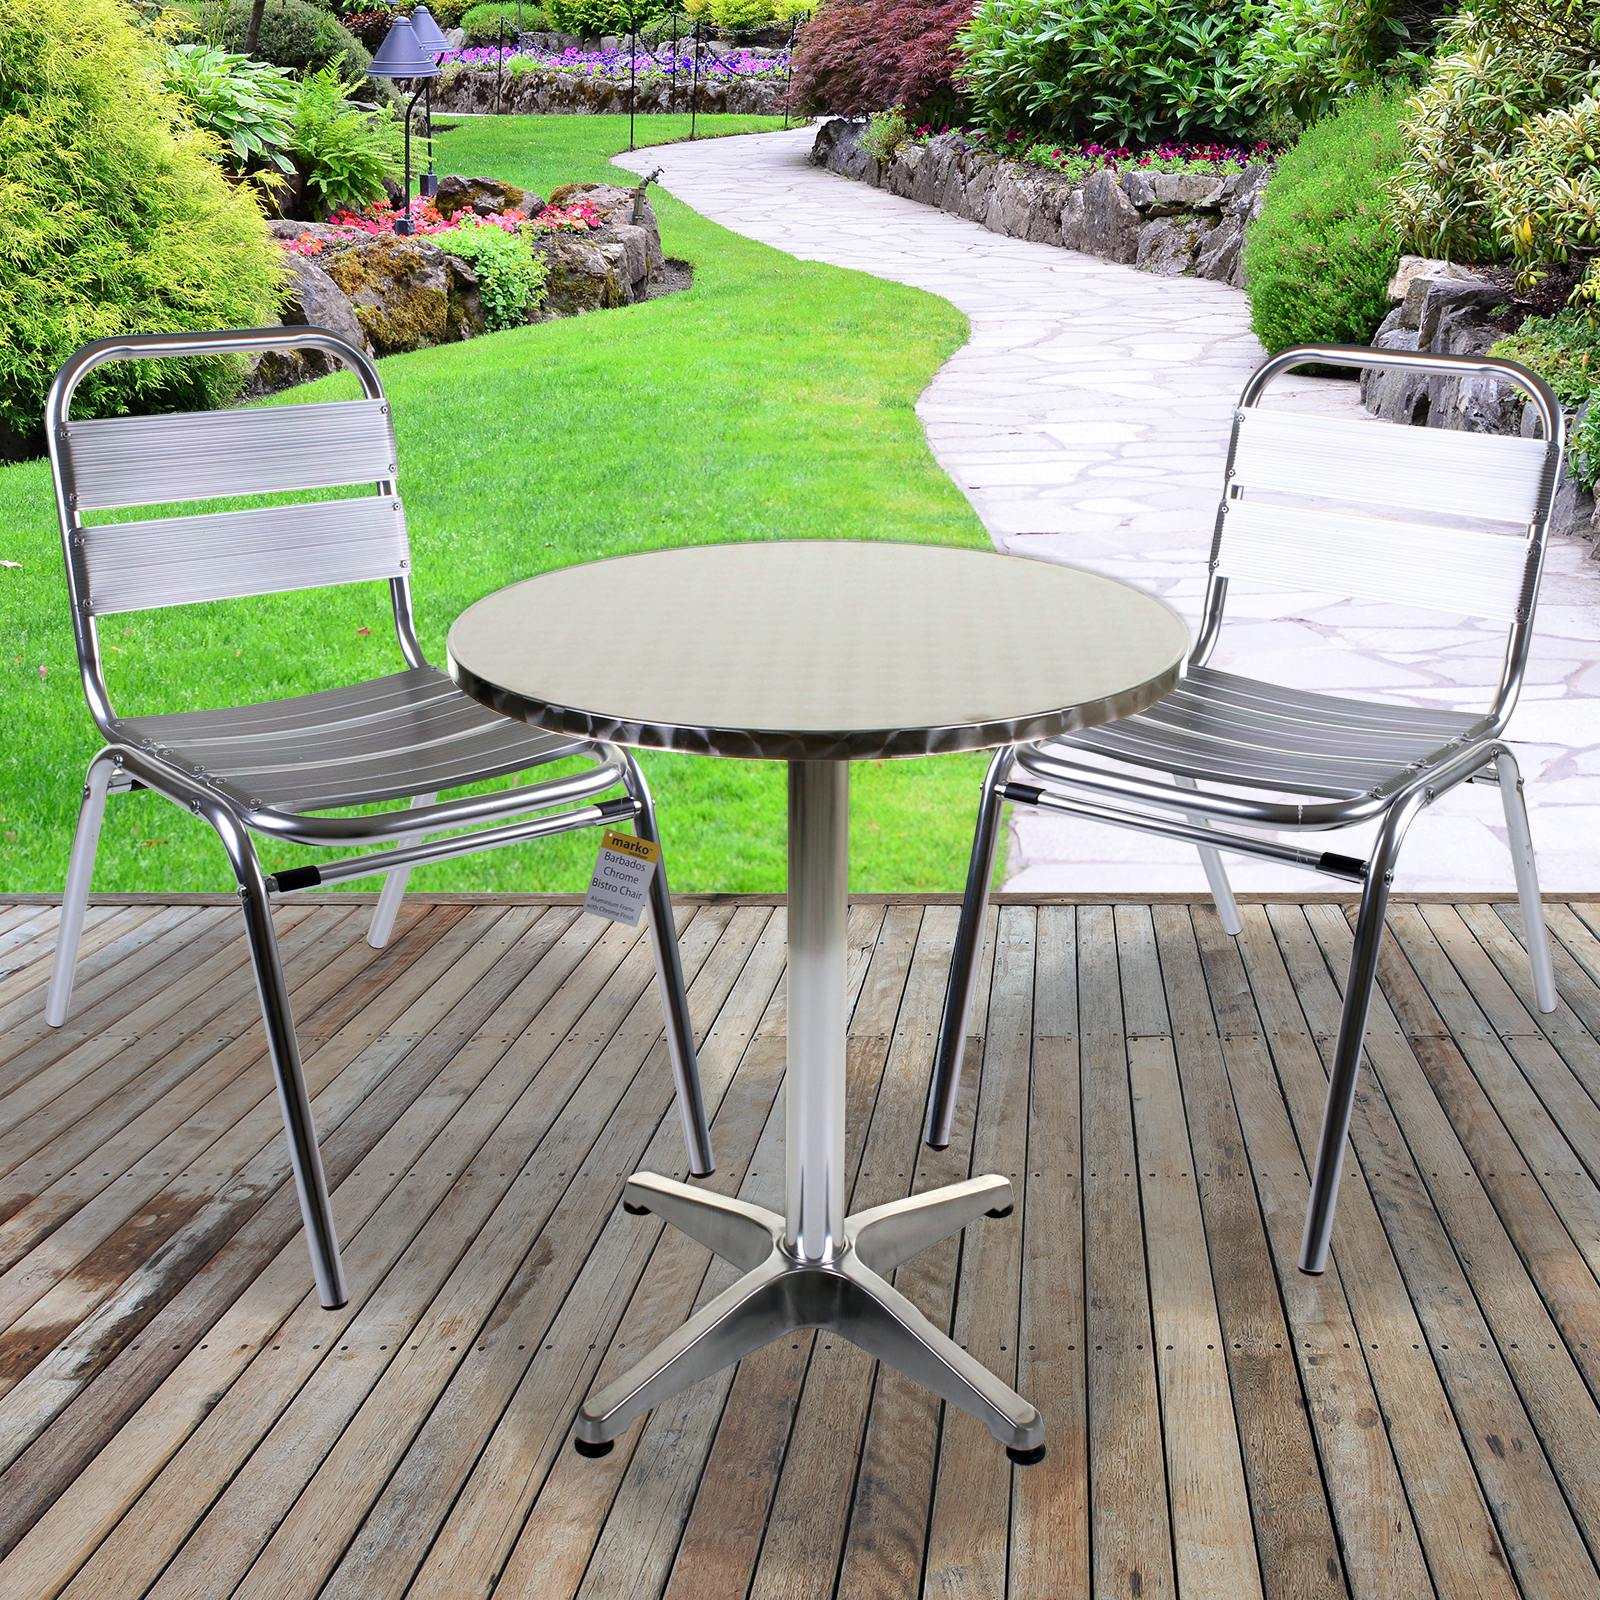 Metal Bistro Table And Chairs Details About 3pc 5pc Bistro Sets Outdoor Garden Furniture Square Round Stacking Tables Chairs